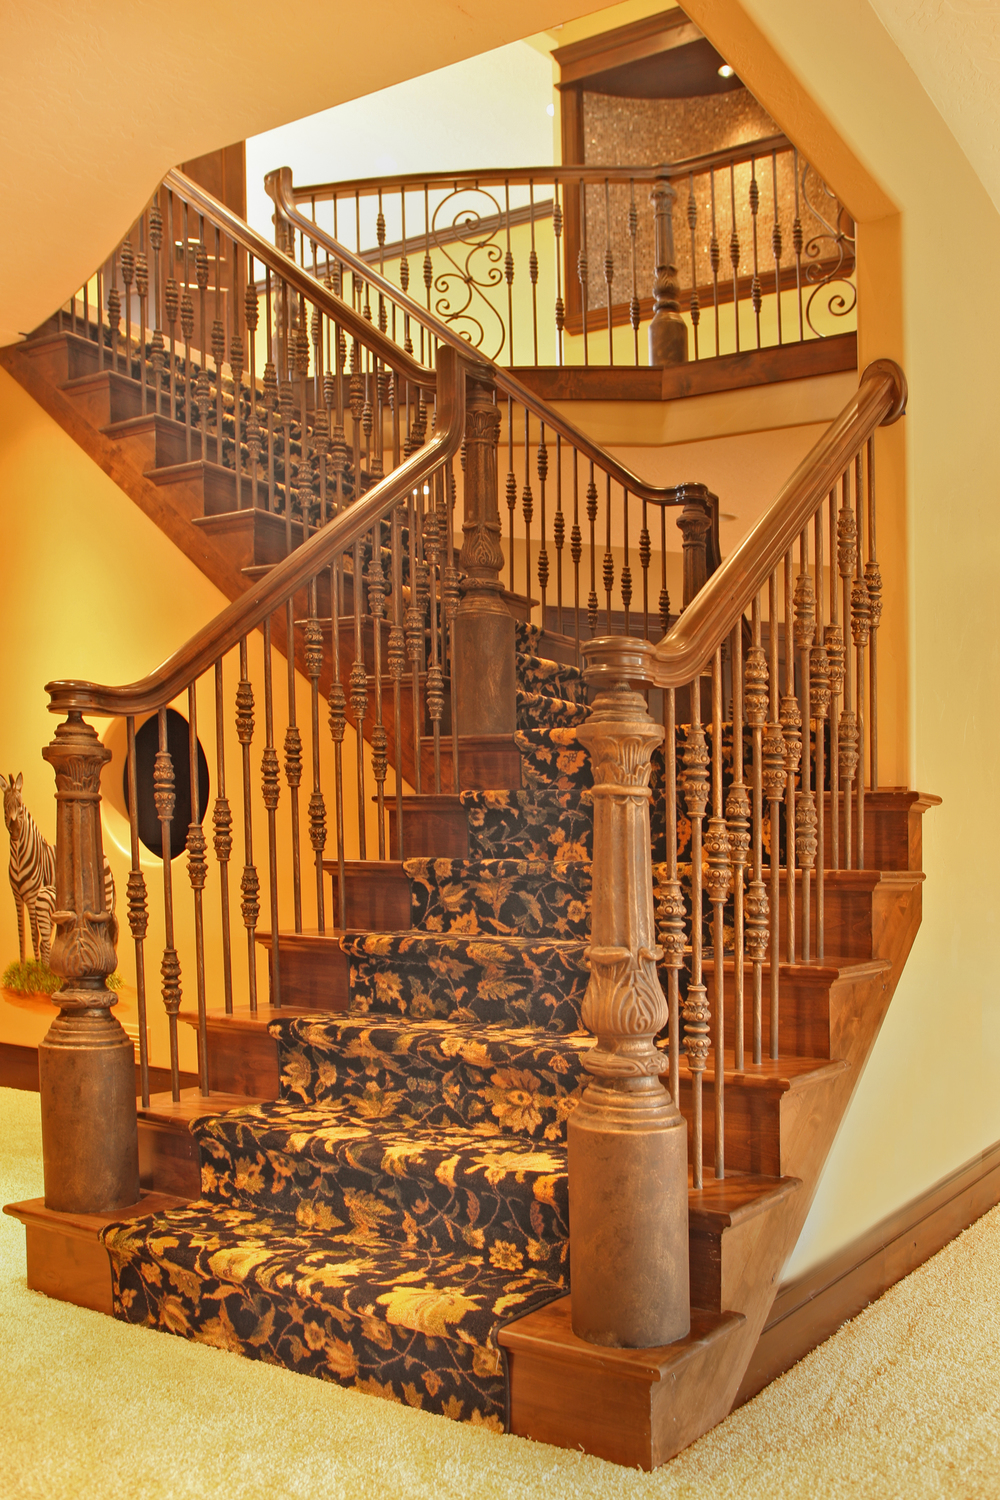 Staircase to Basement